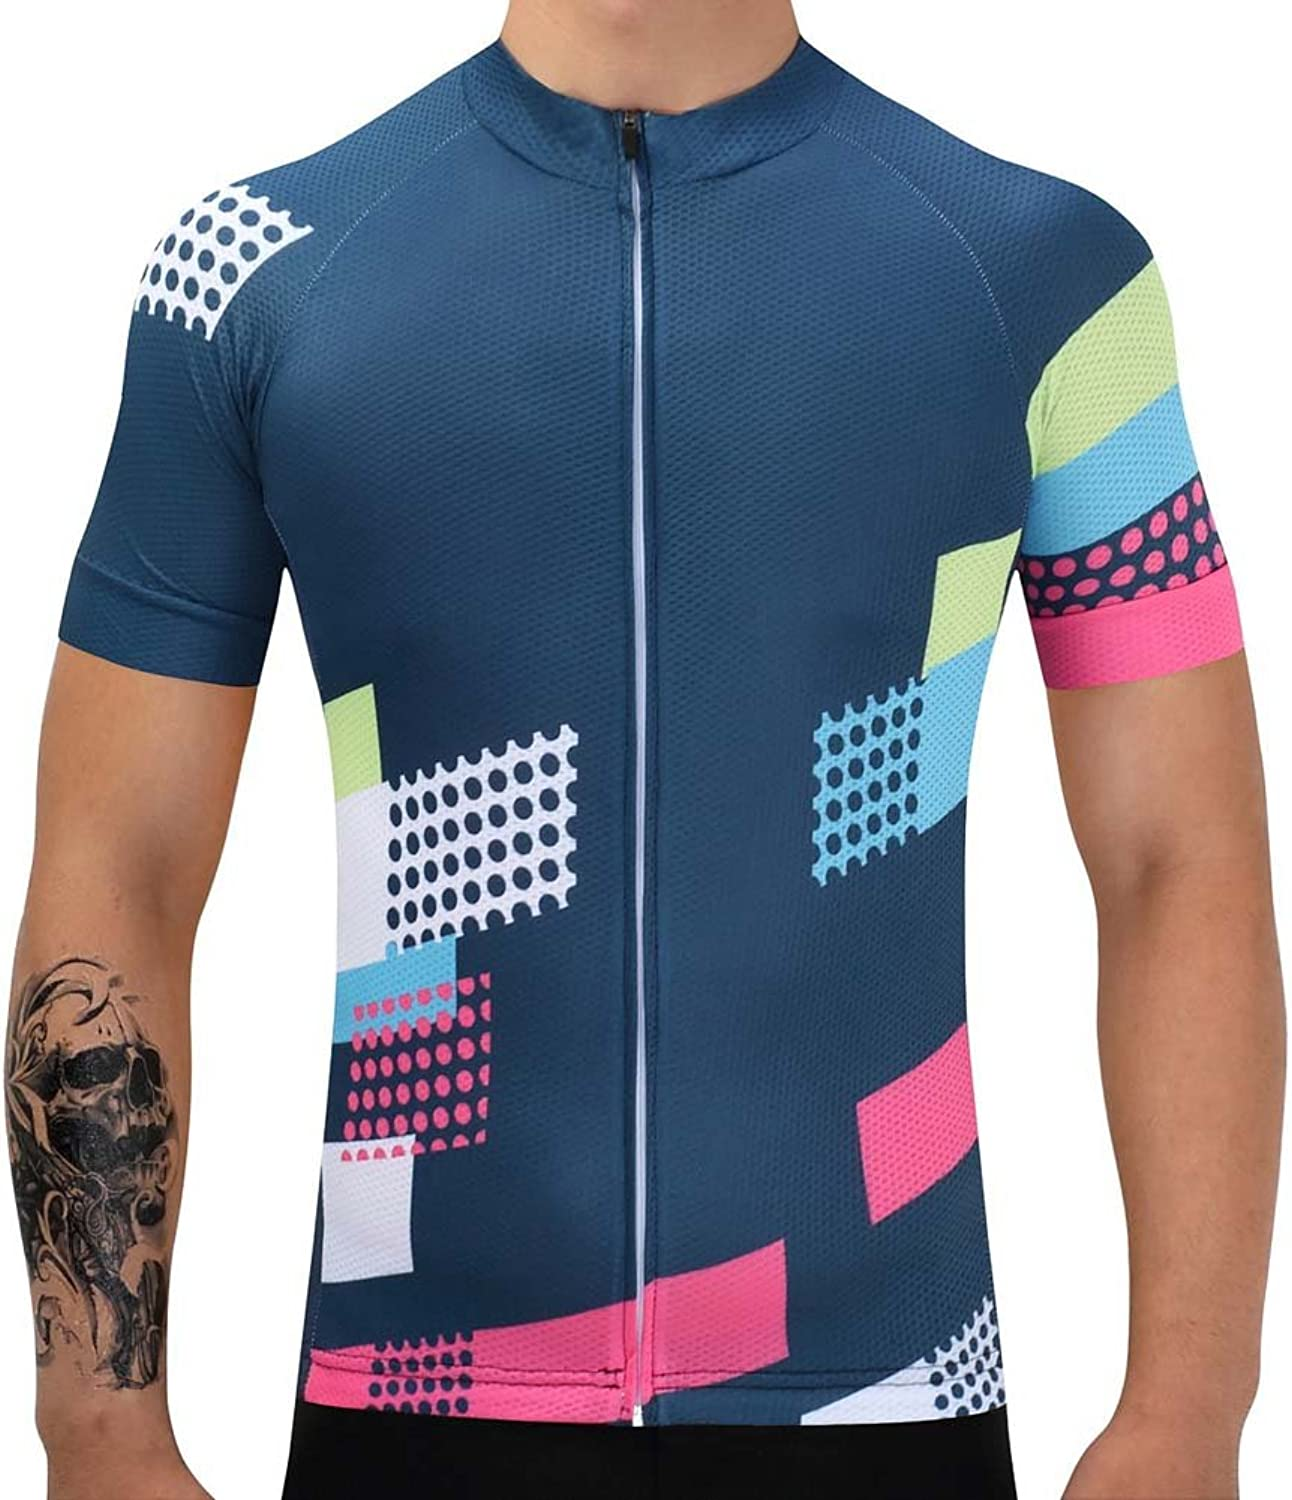 Men's Cycling Short Sleeve, Bicycle Outdoor Sports Breathable Top